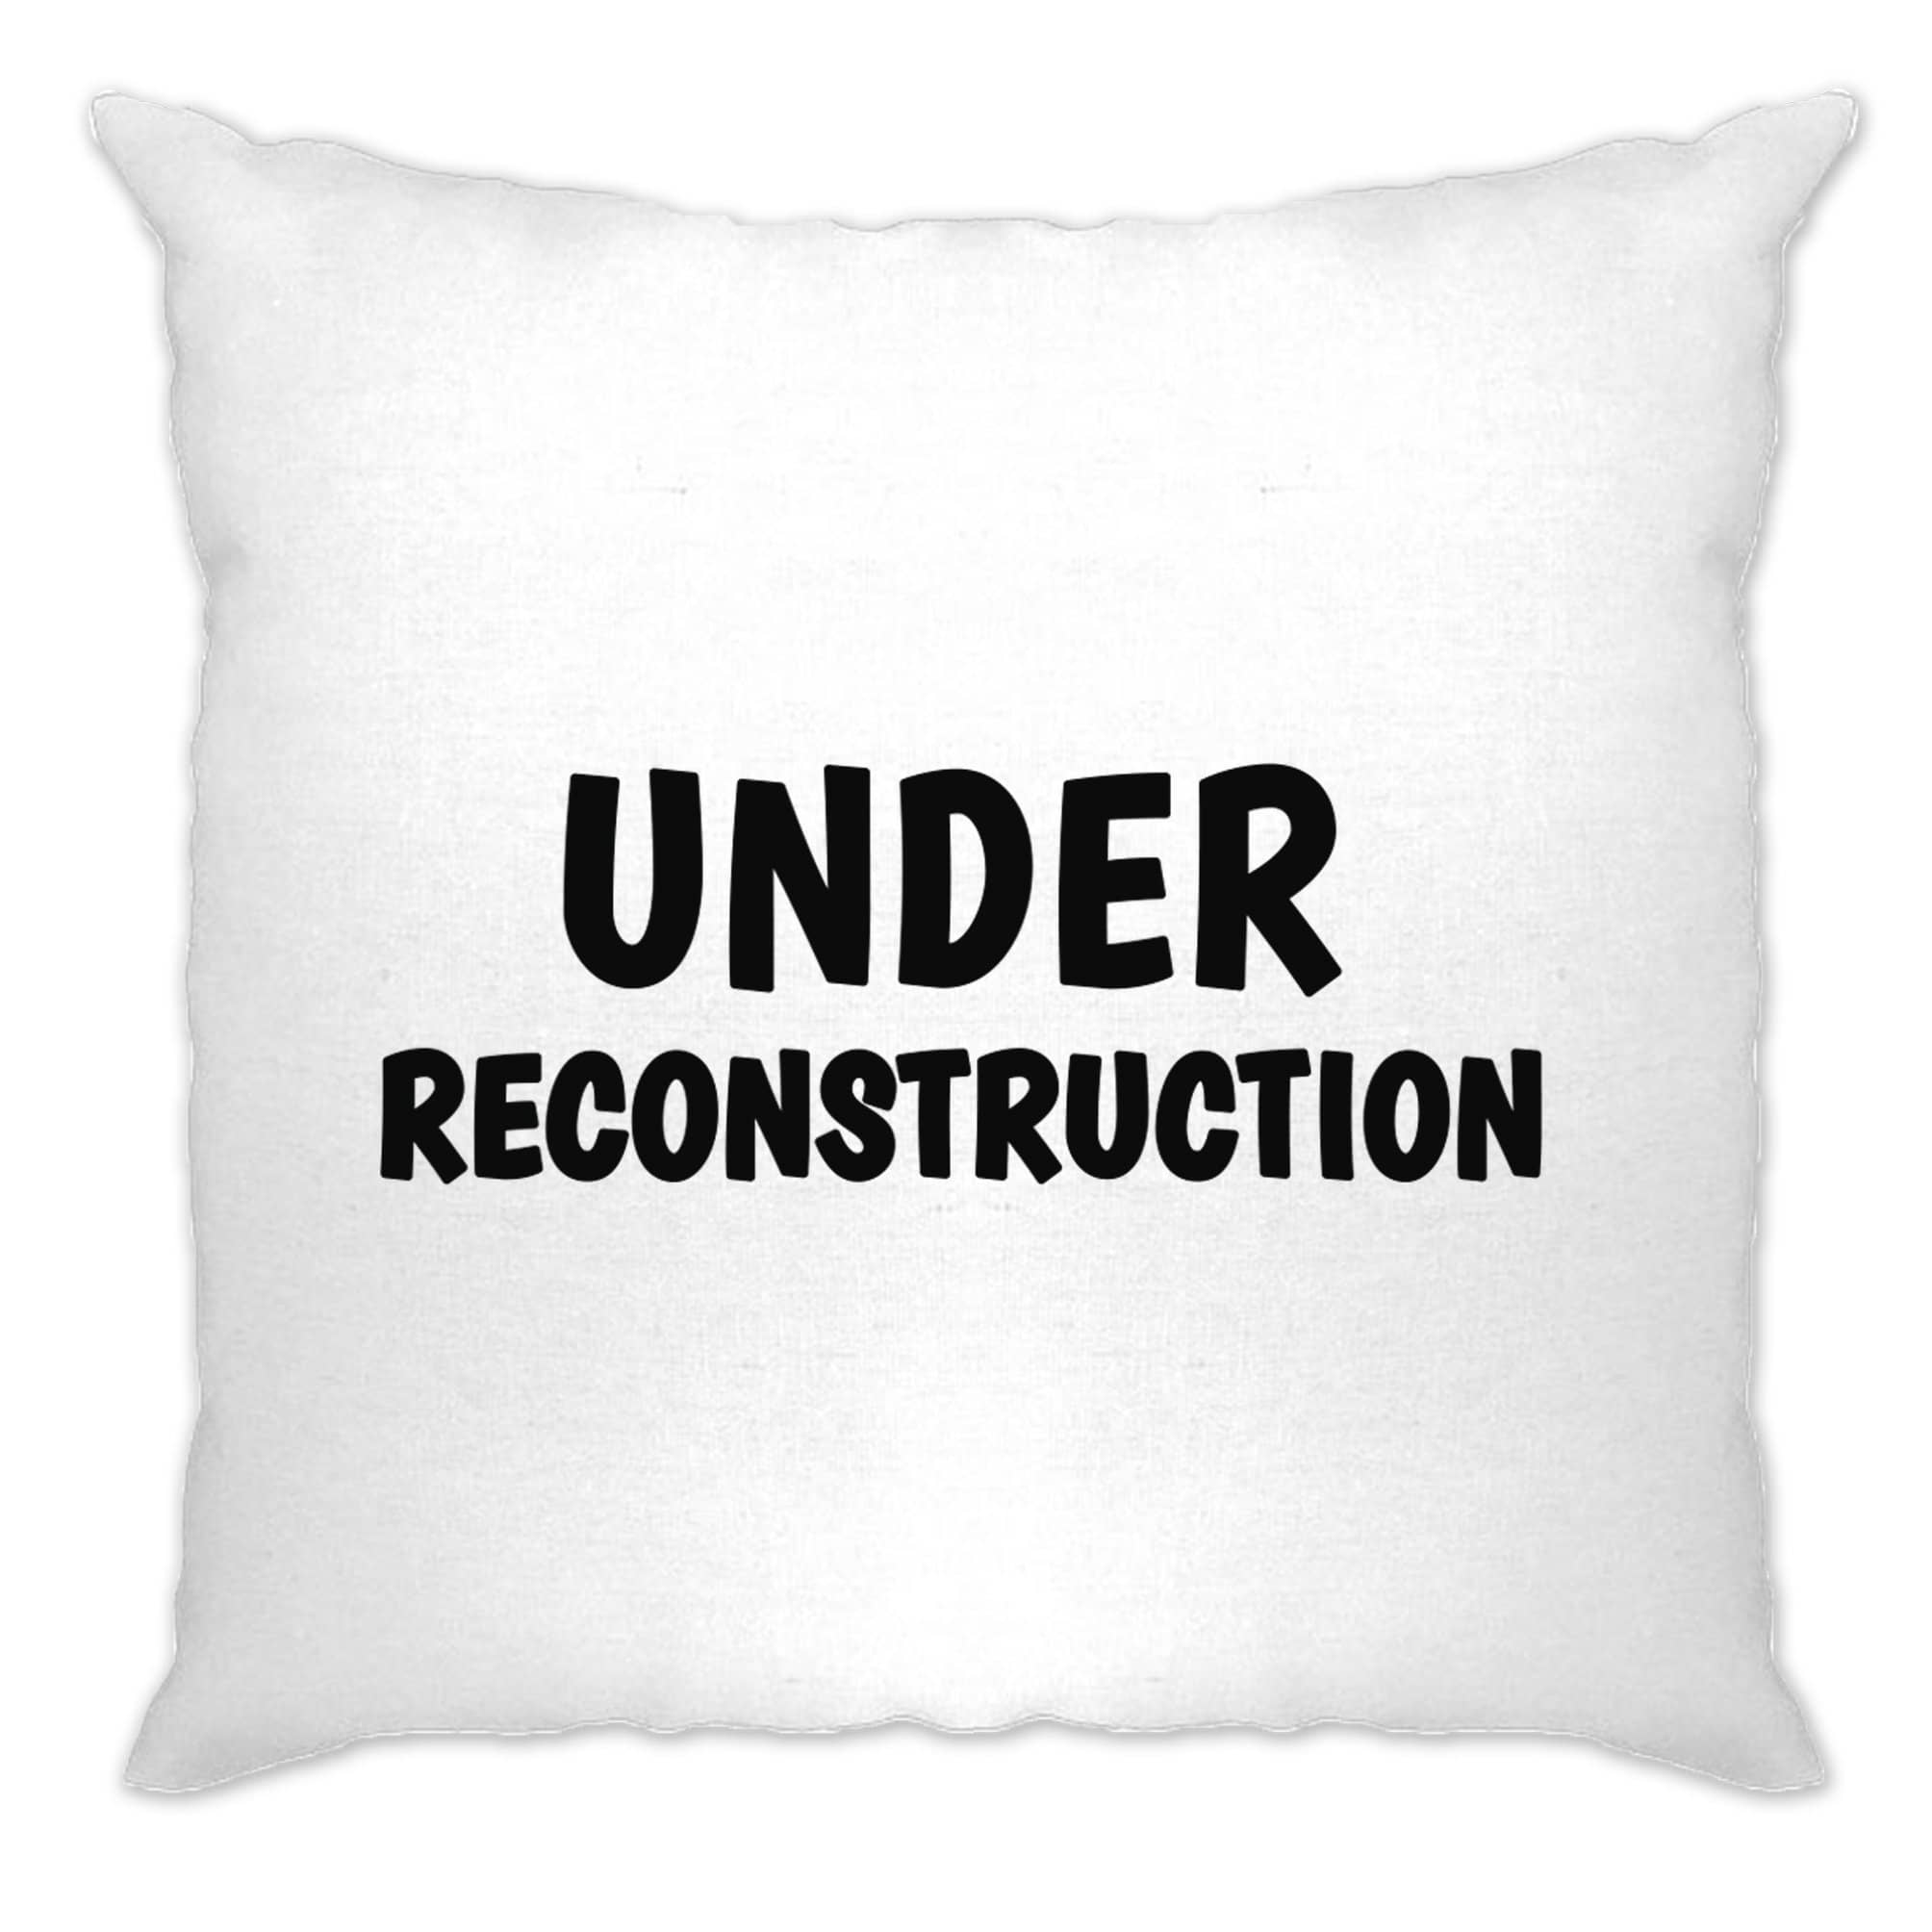 Novelty Gym Cushion Cover Under Reconstruction Slogan